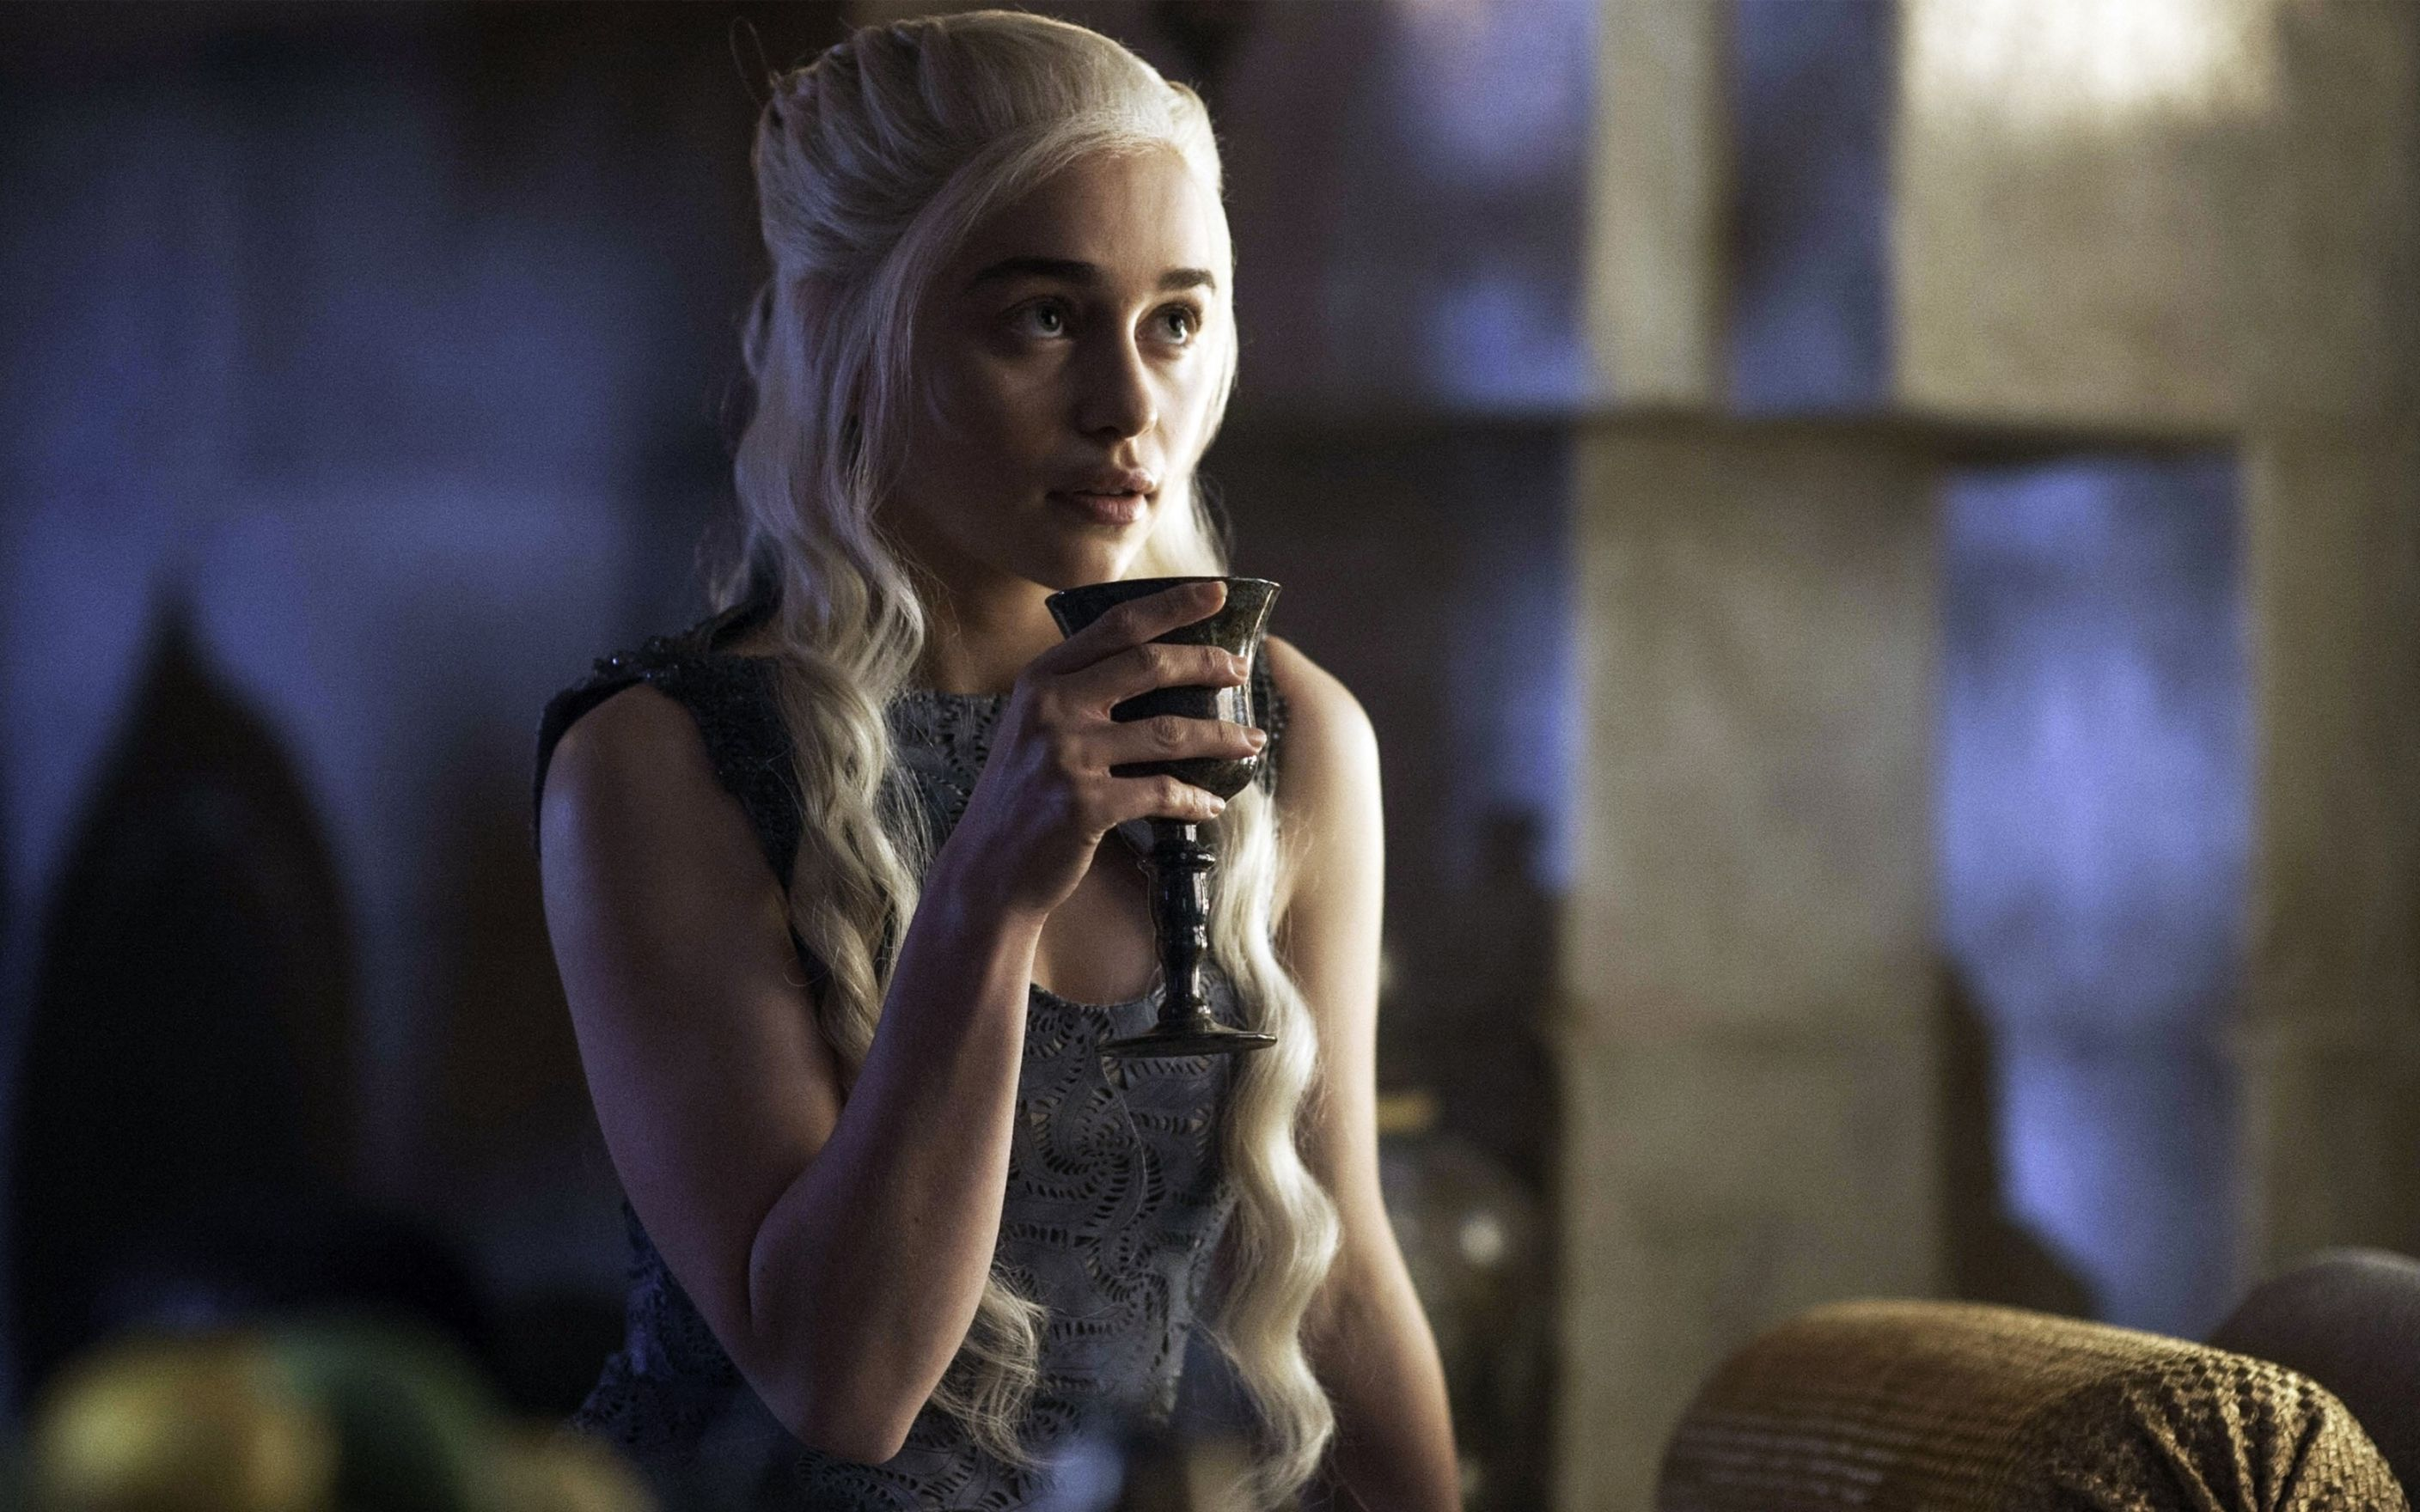 Download free HD Daenerys Targaryen TV Series Wallpaper, image